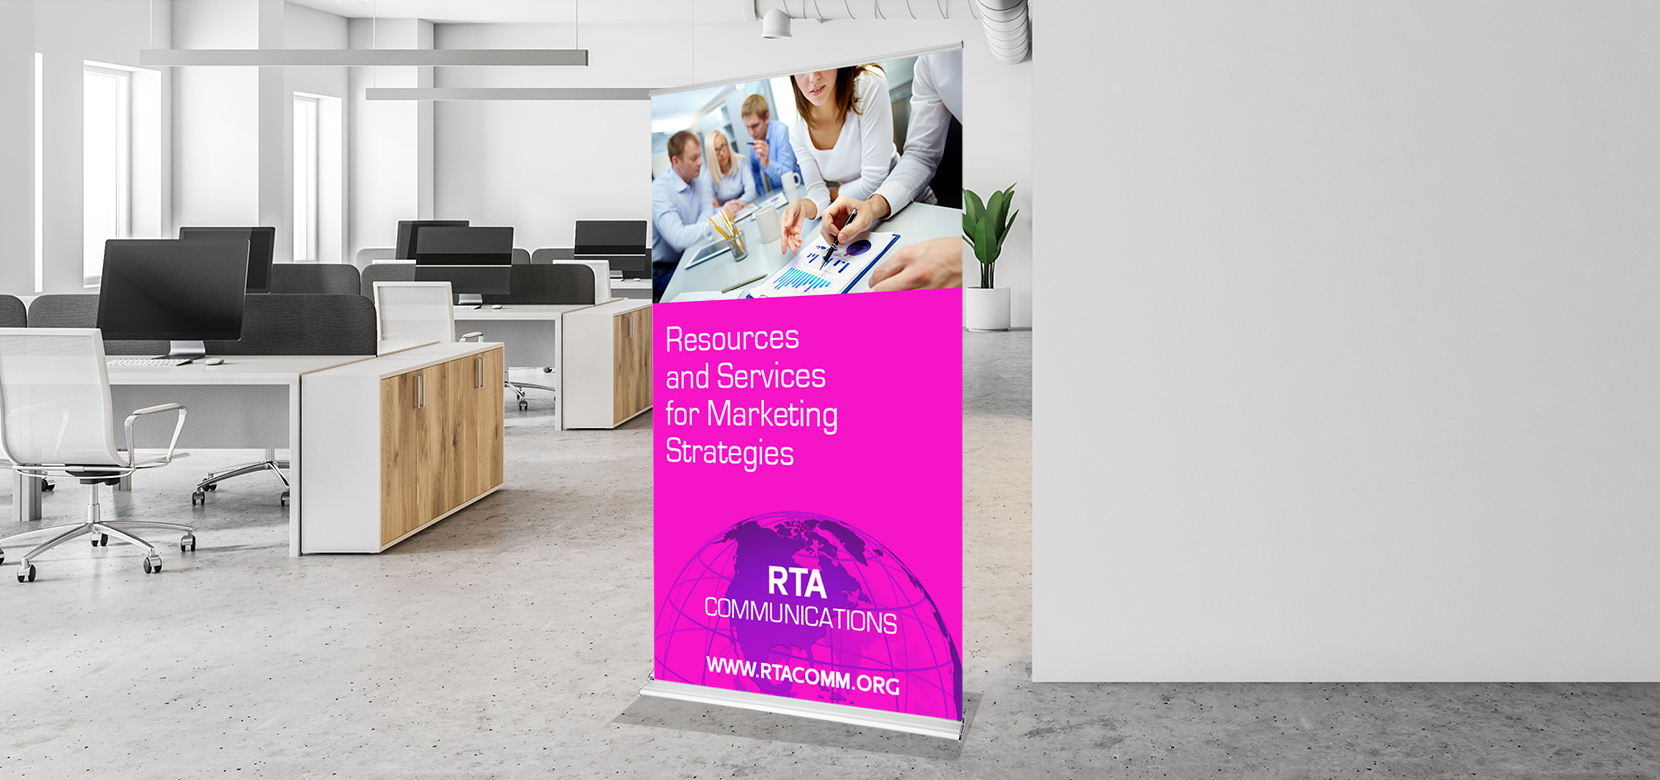 silverstep retractable banner stand 1 sided front